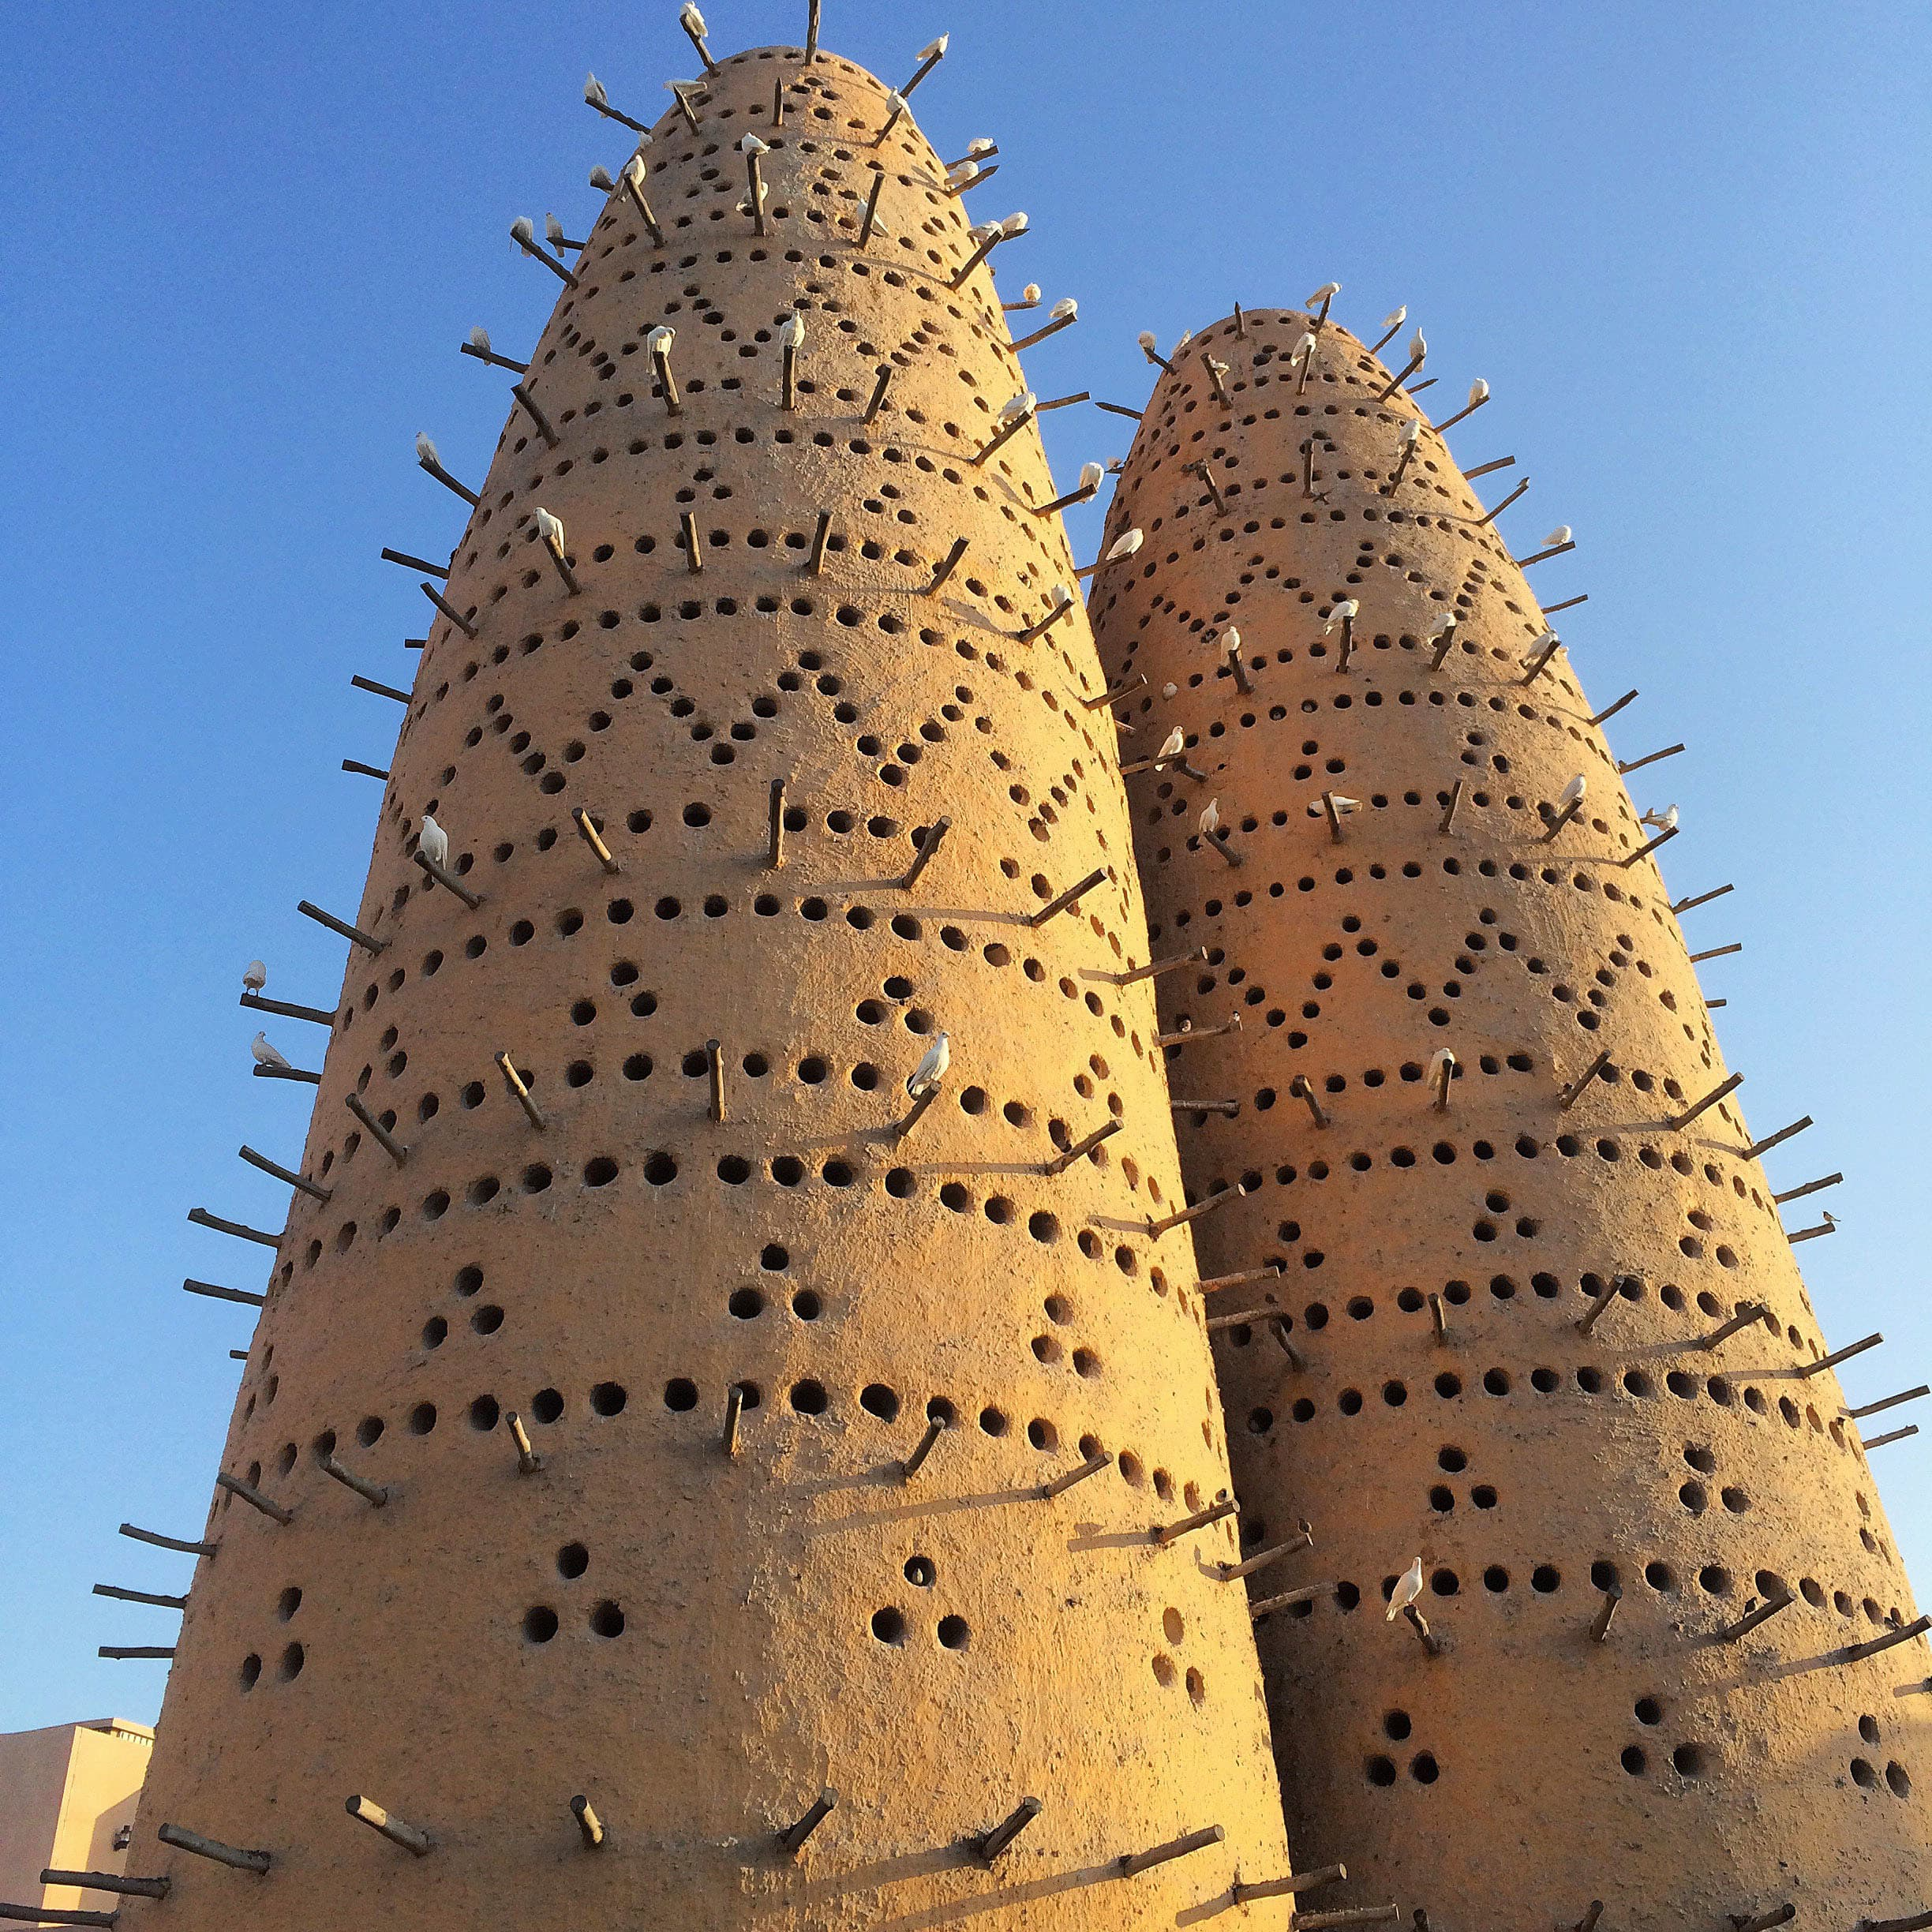 A traditional pigeon tower at Katara Cultural Village.